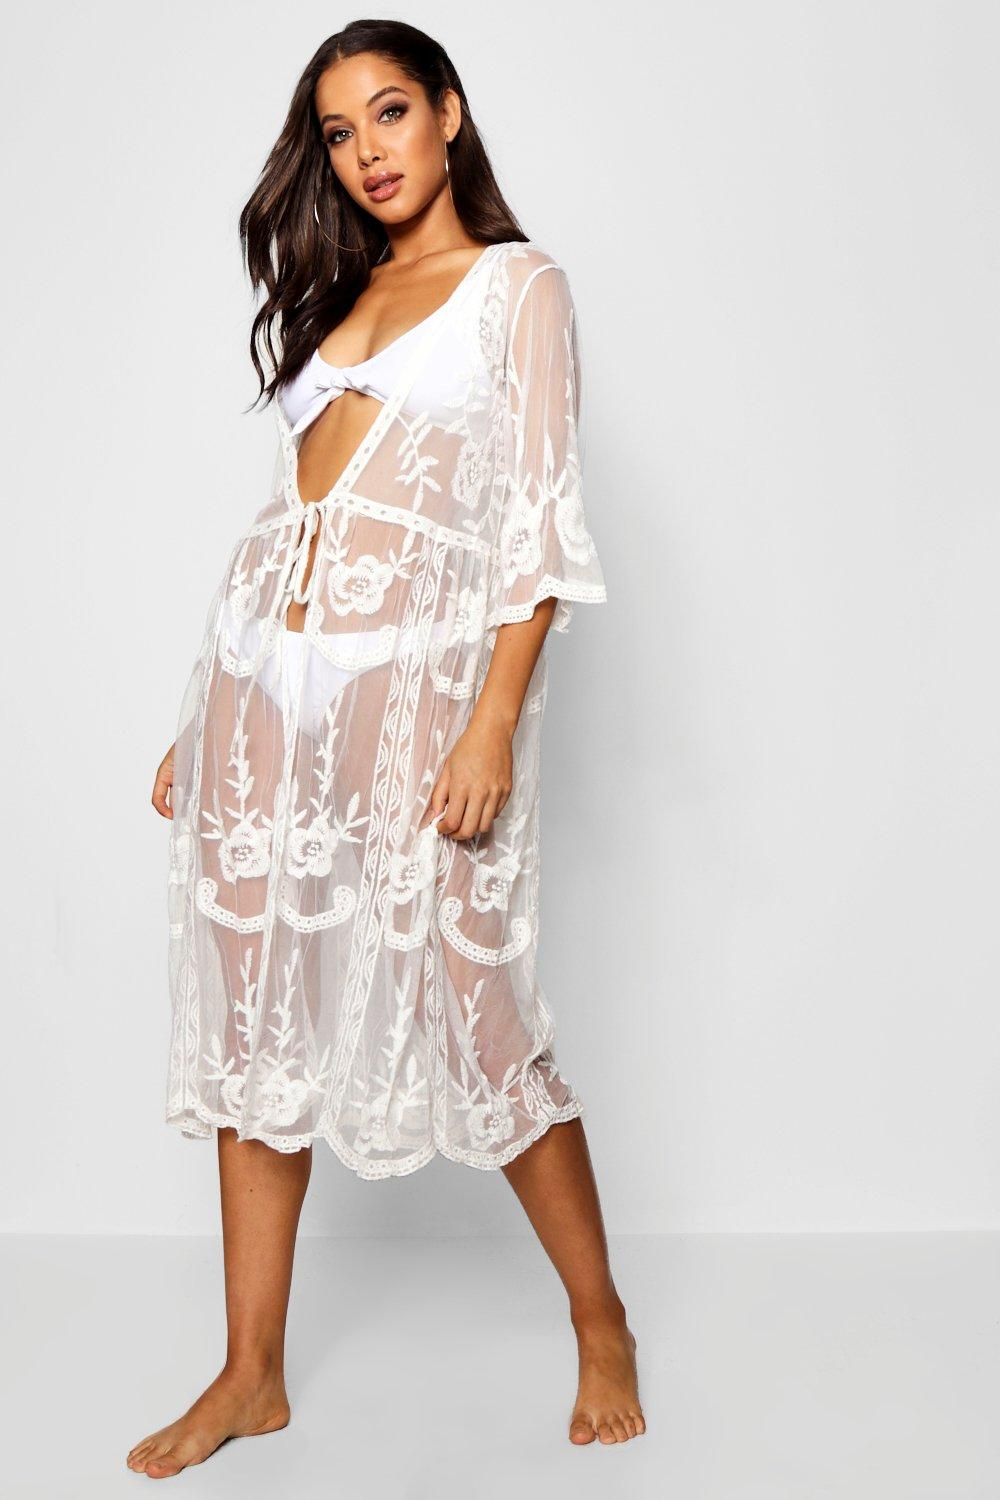 c8eeda5550 Embroidered Lace Beach Cover Up   Boohoo